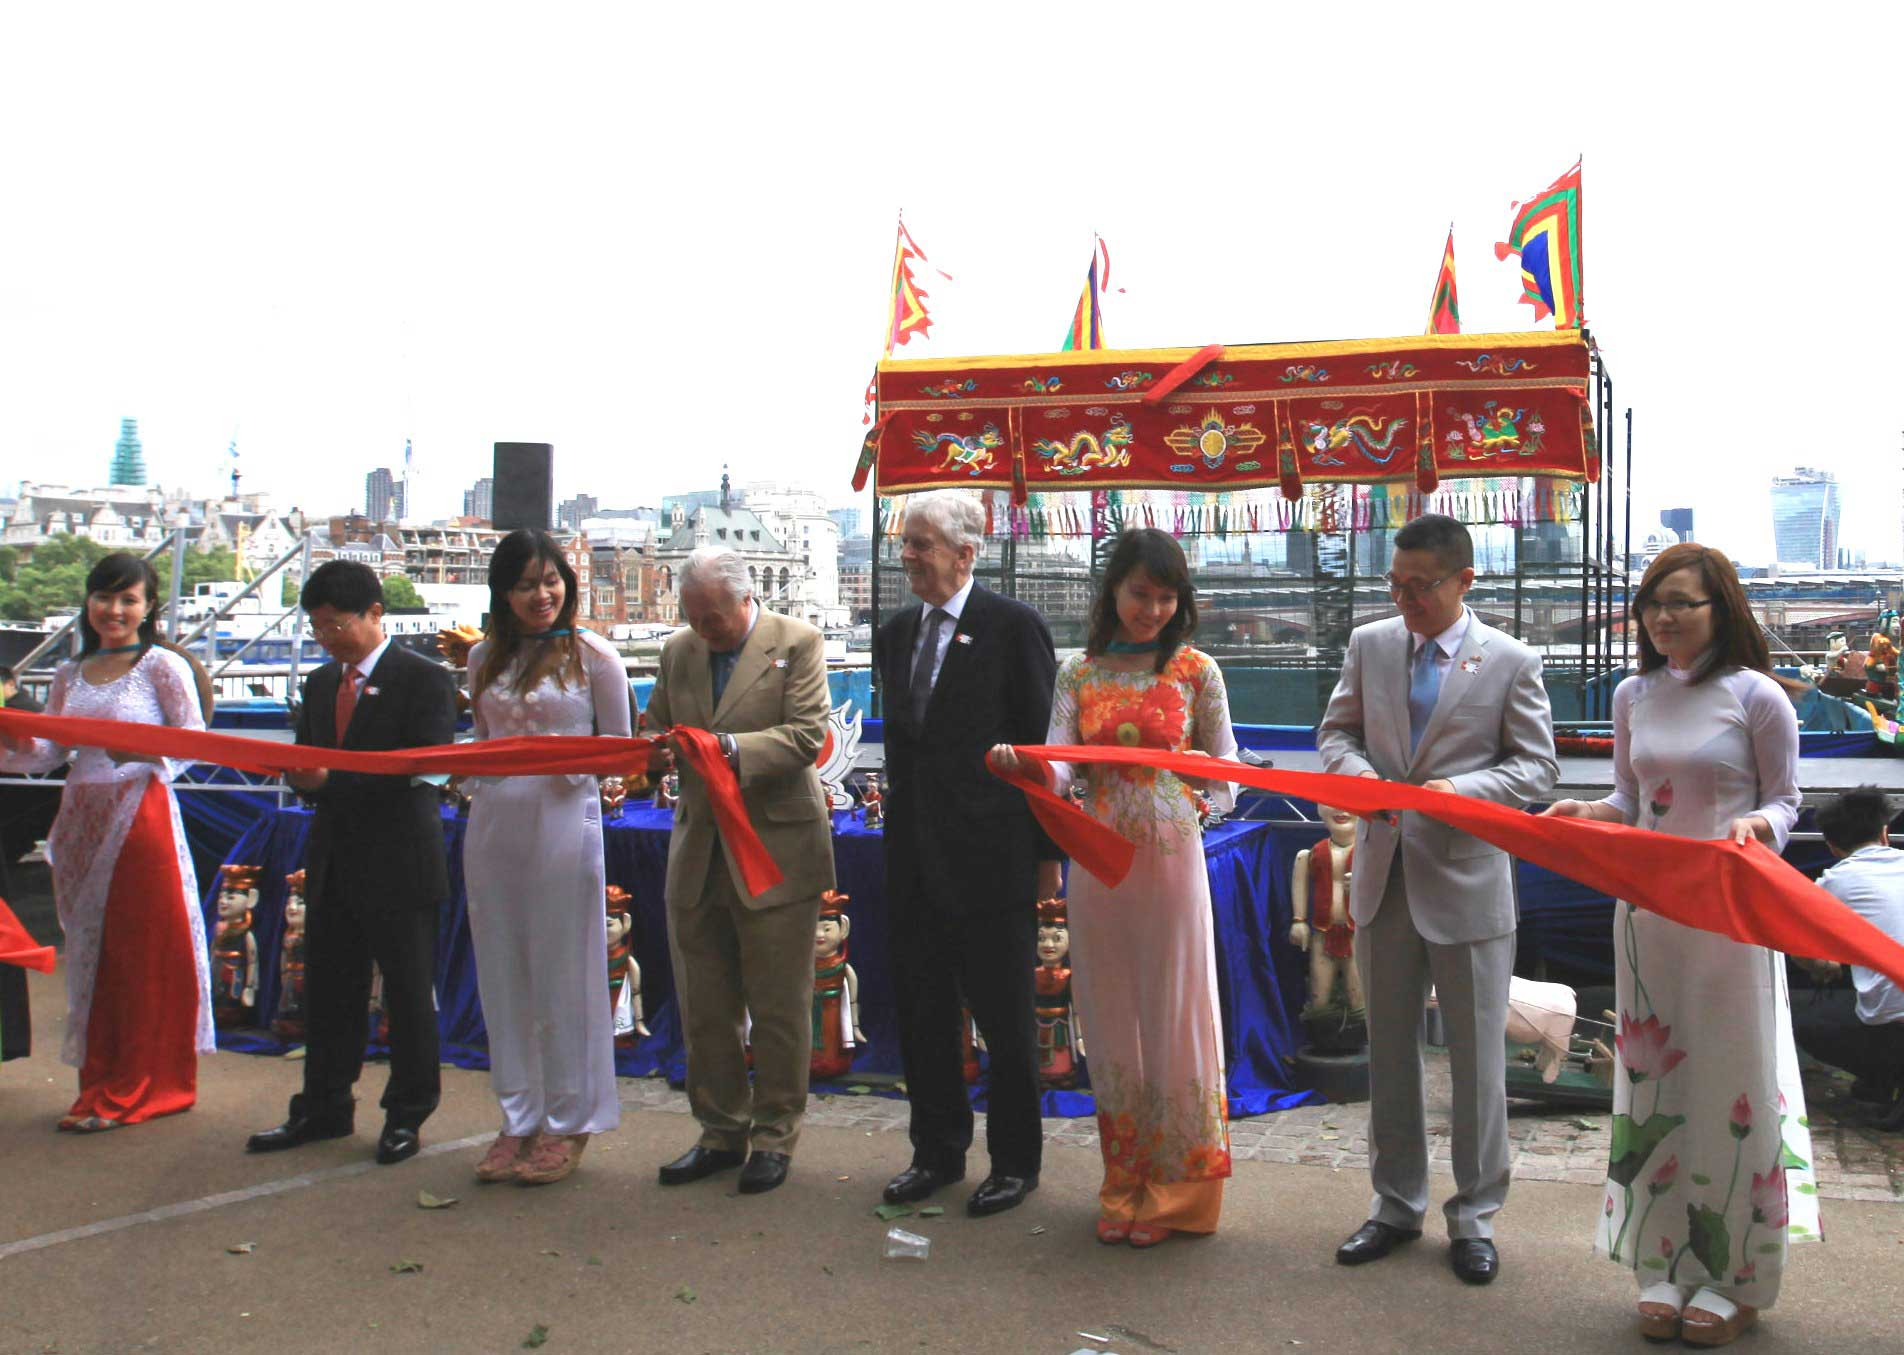 Viet Nam Open Festival (VOF) opened in Southbank